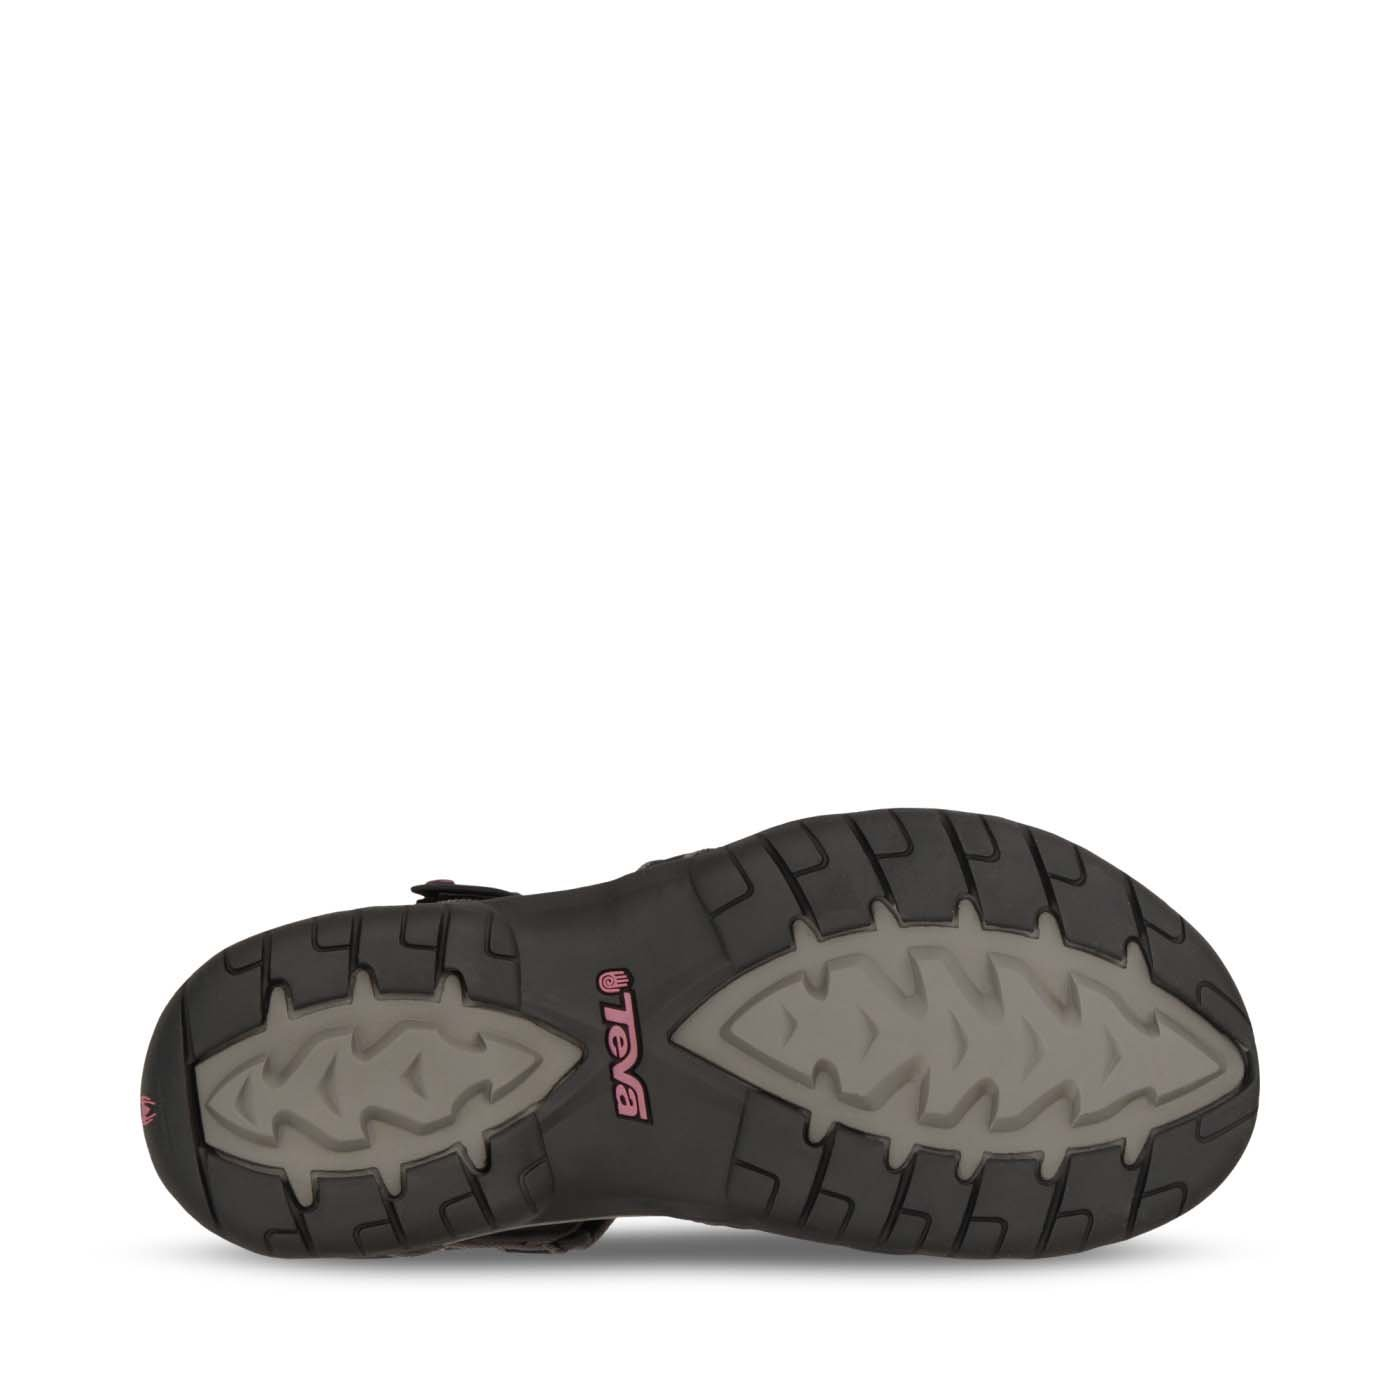 Teva Women's Tirra B(M) Athletic Sandal B003AYC6NC 8.5 B(M) Tirra US|Black/Grey 7dcc4e